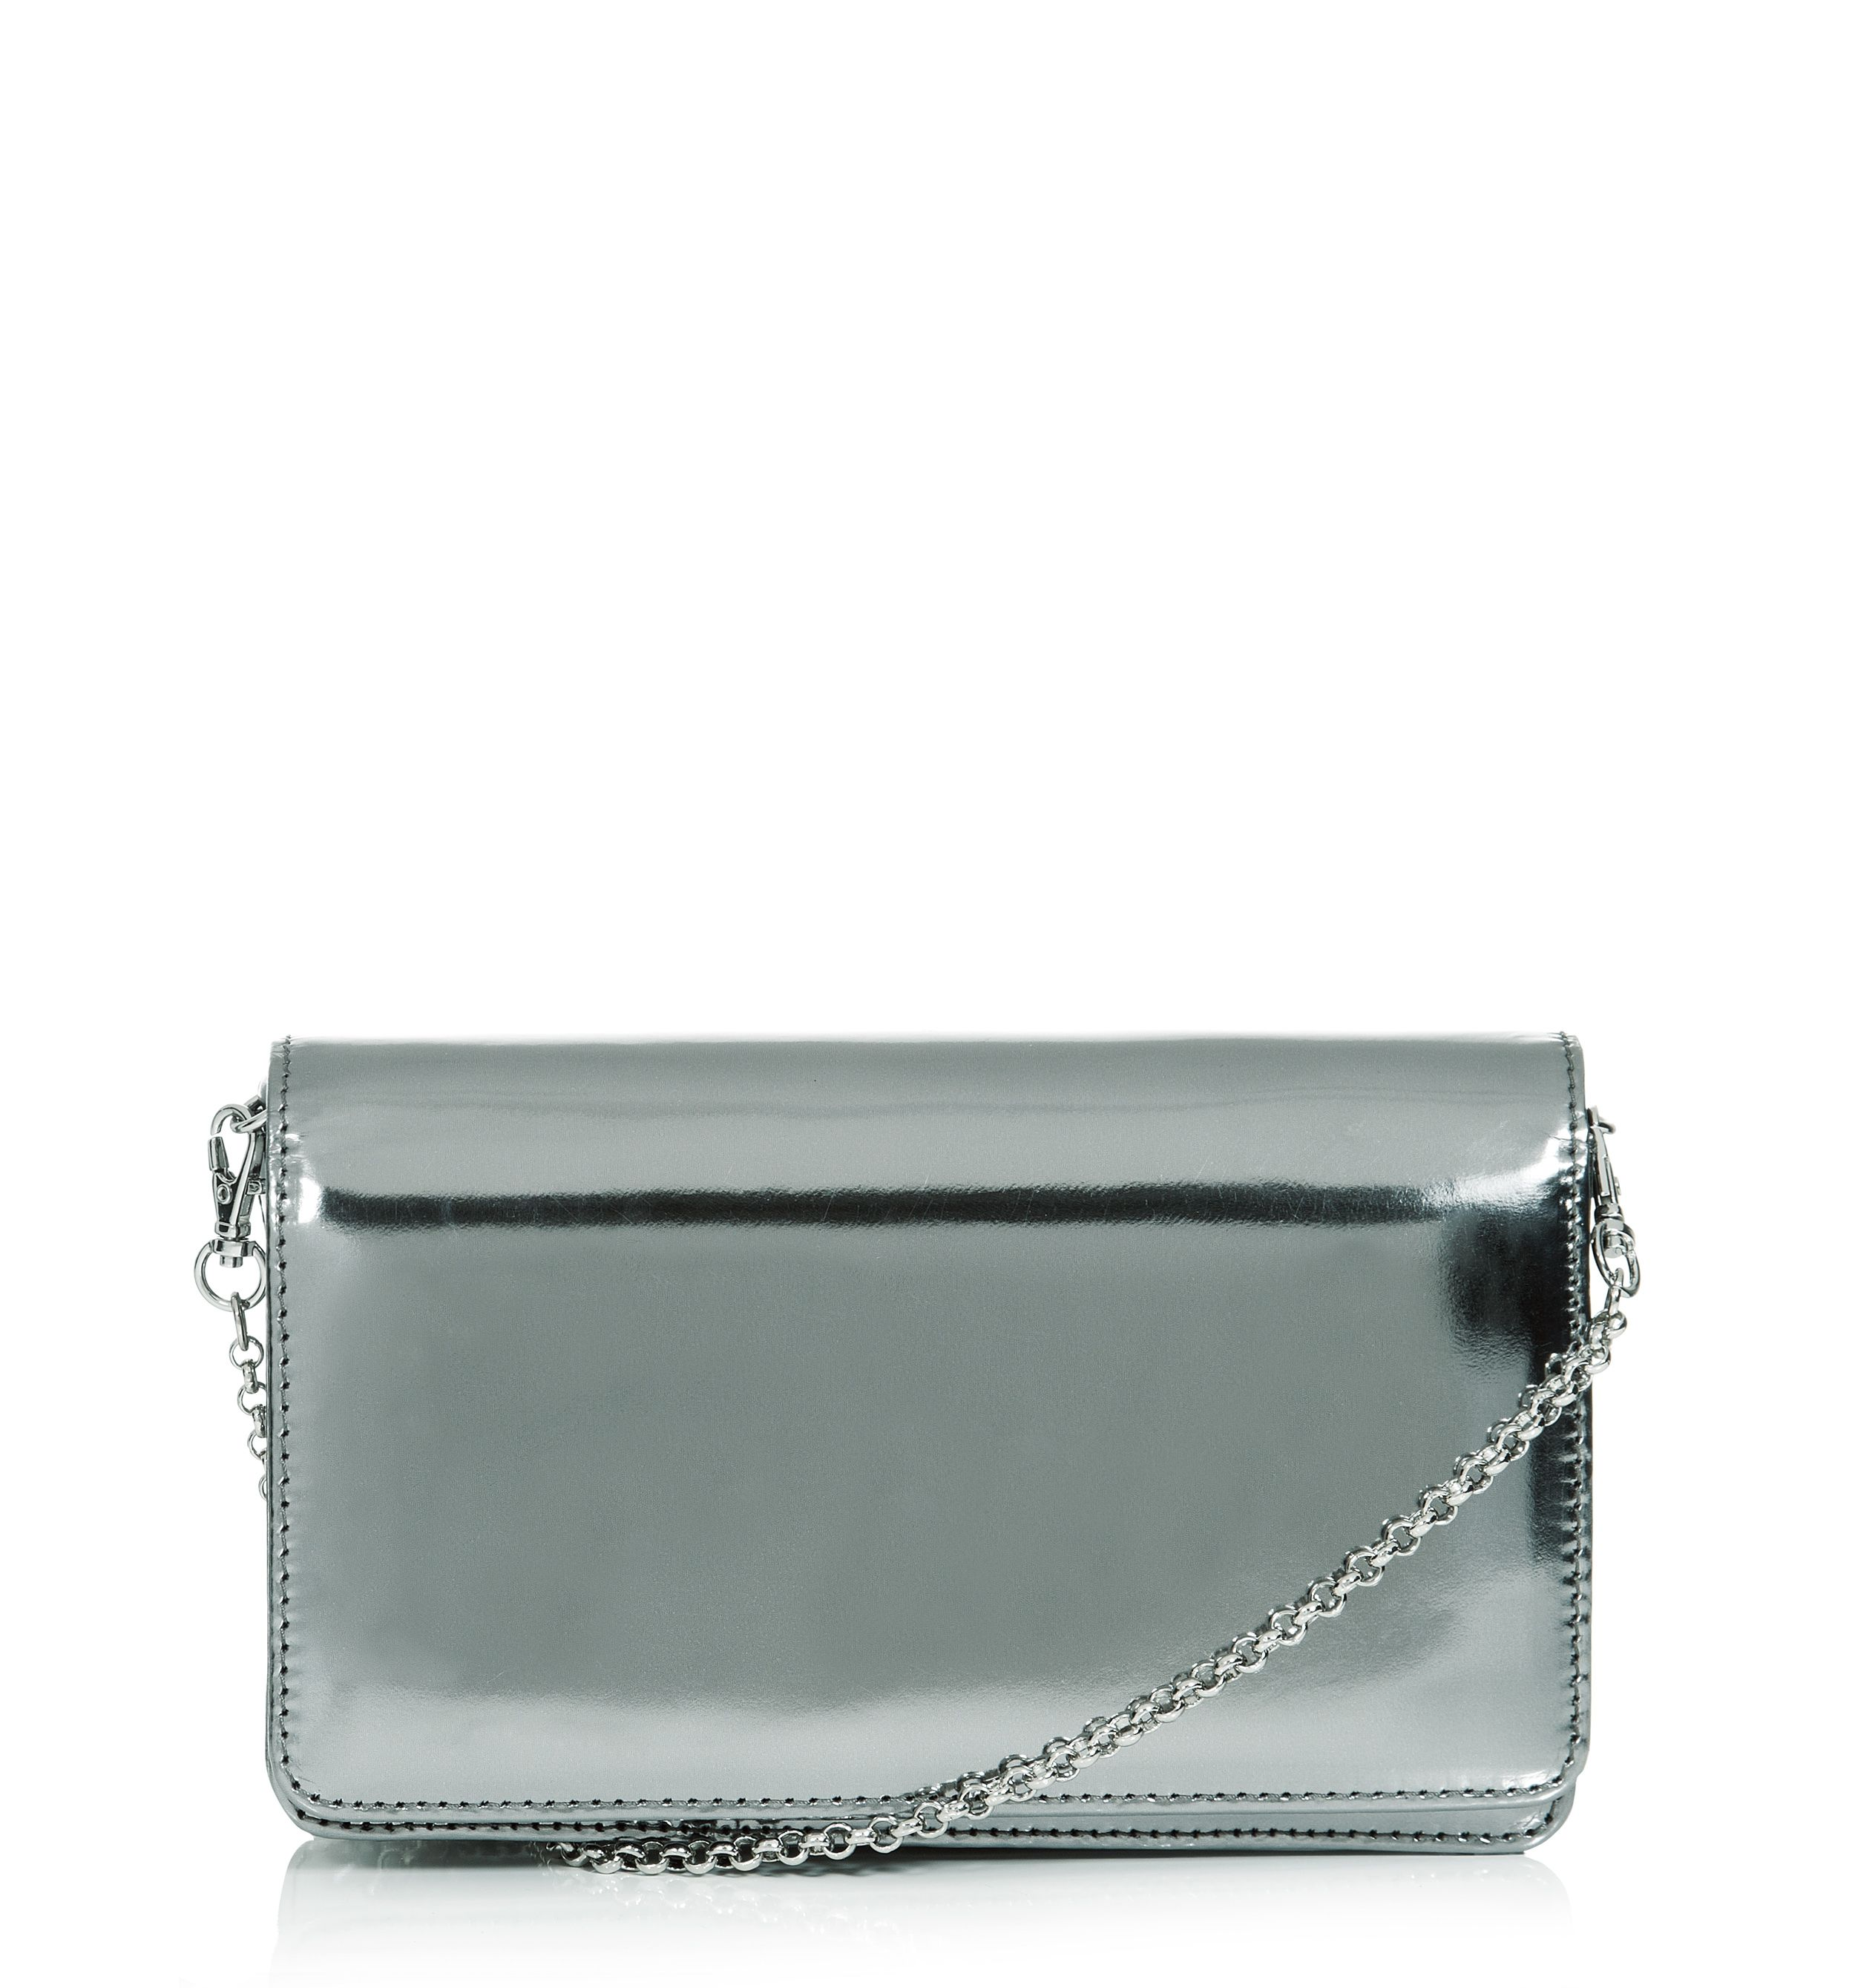 Eve metallic bag